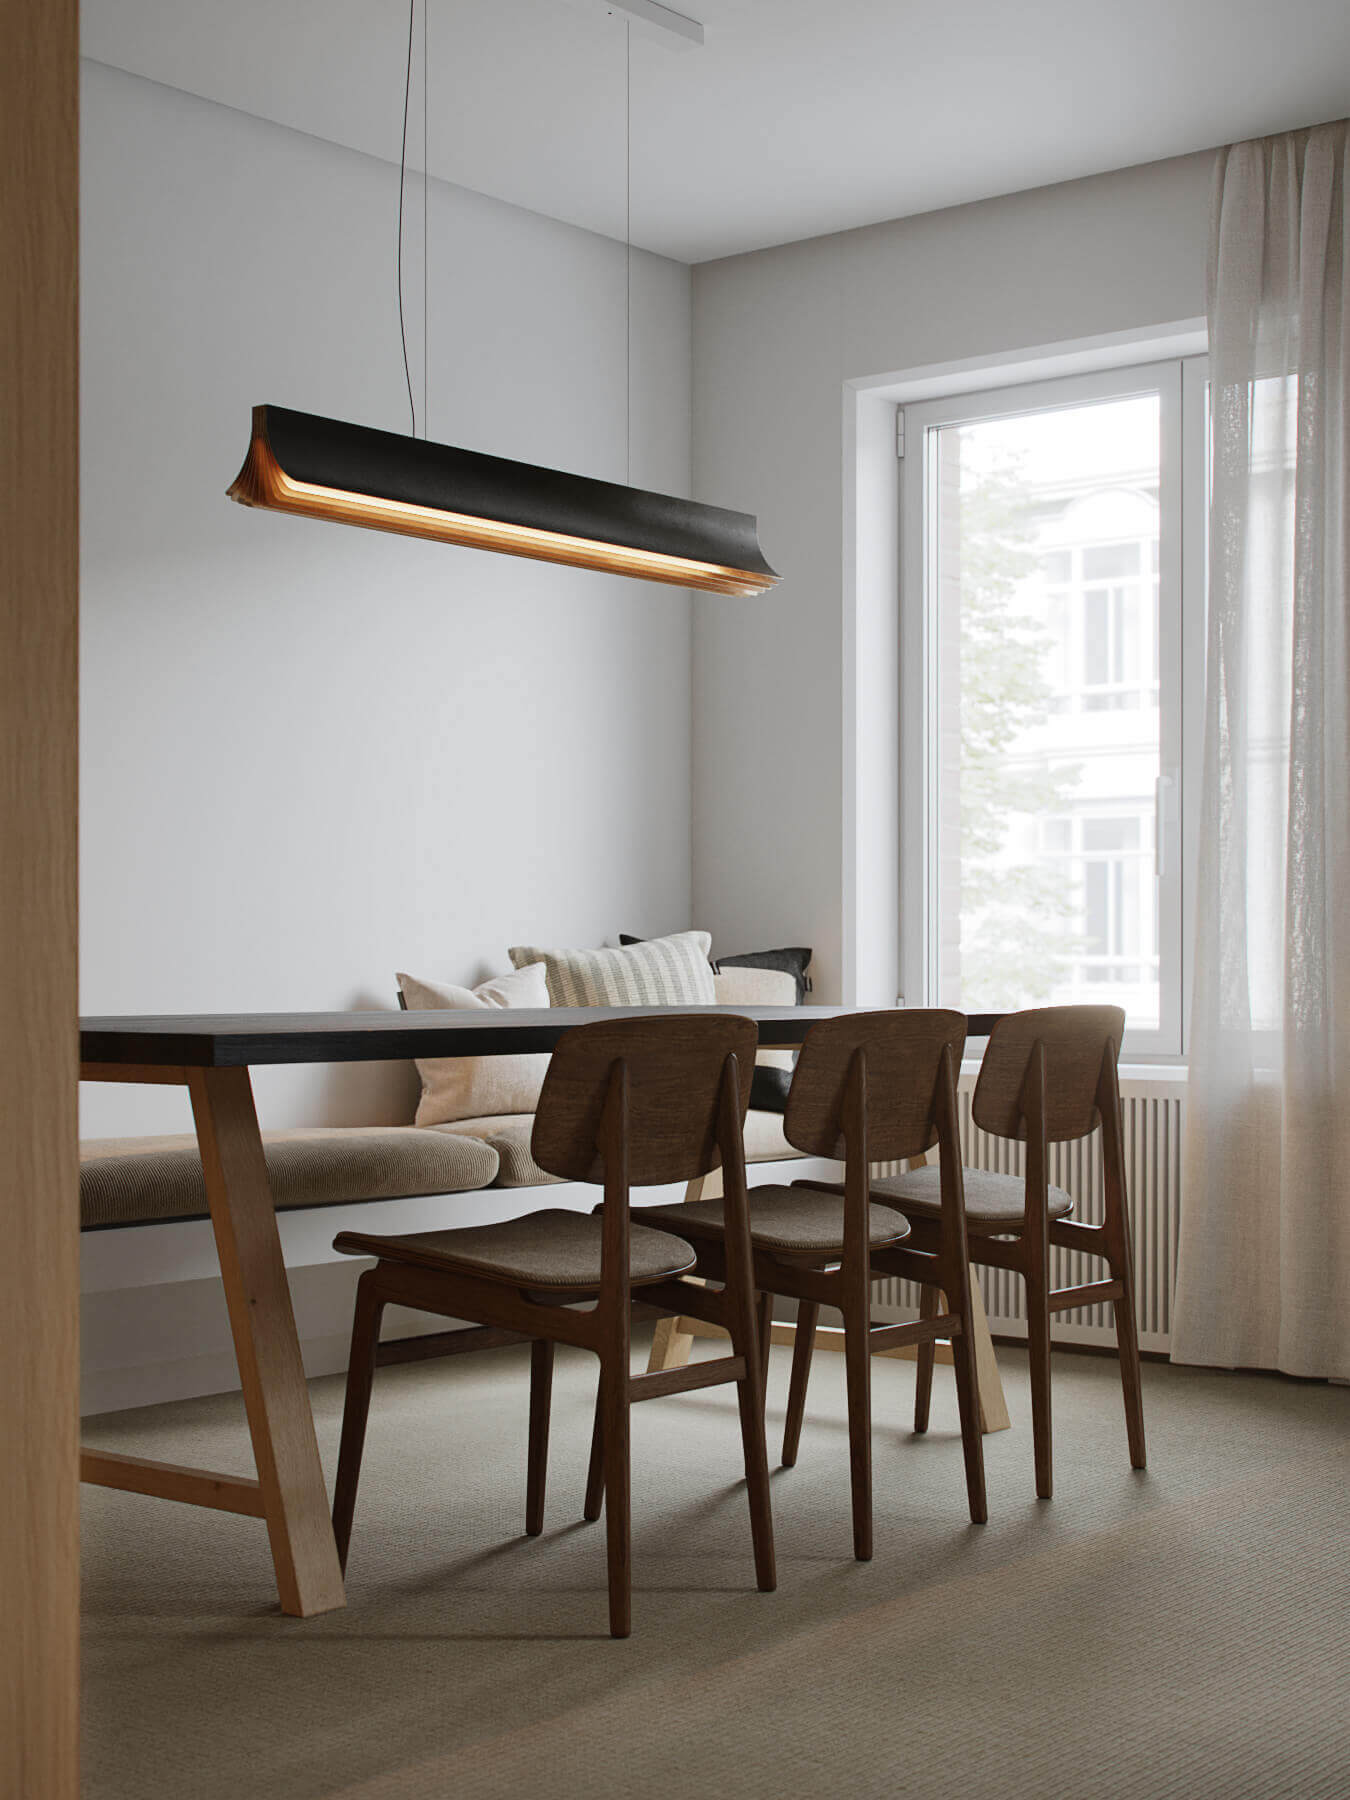 Trendy Living & Kitchen apartment dining room - cgi visualization